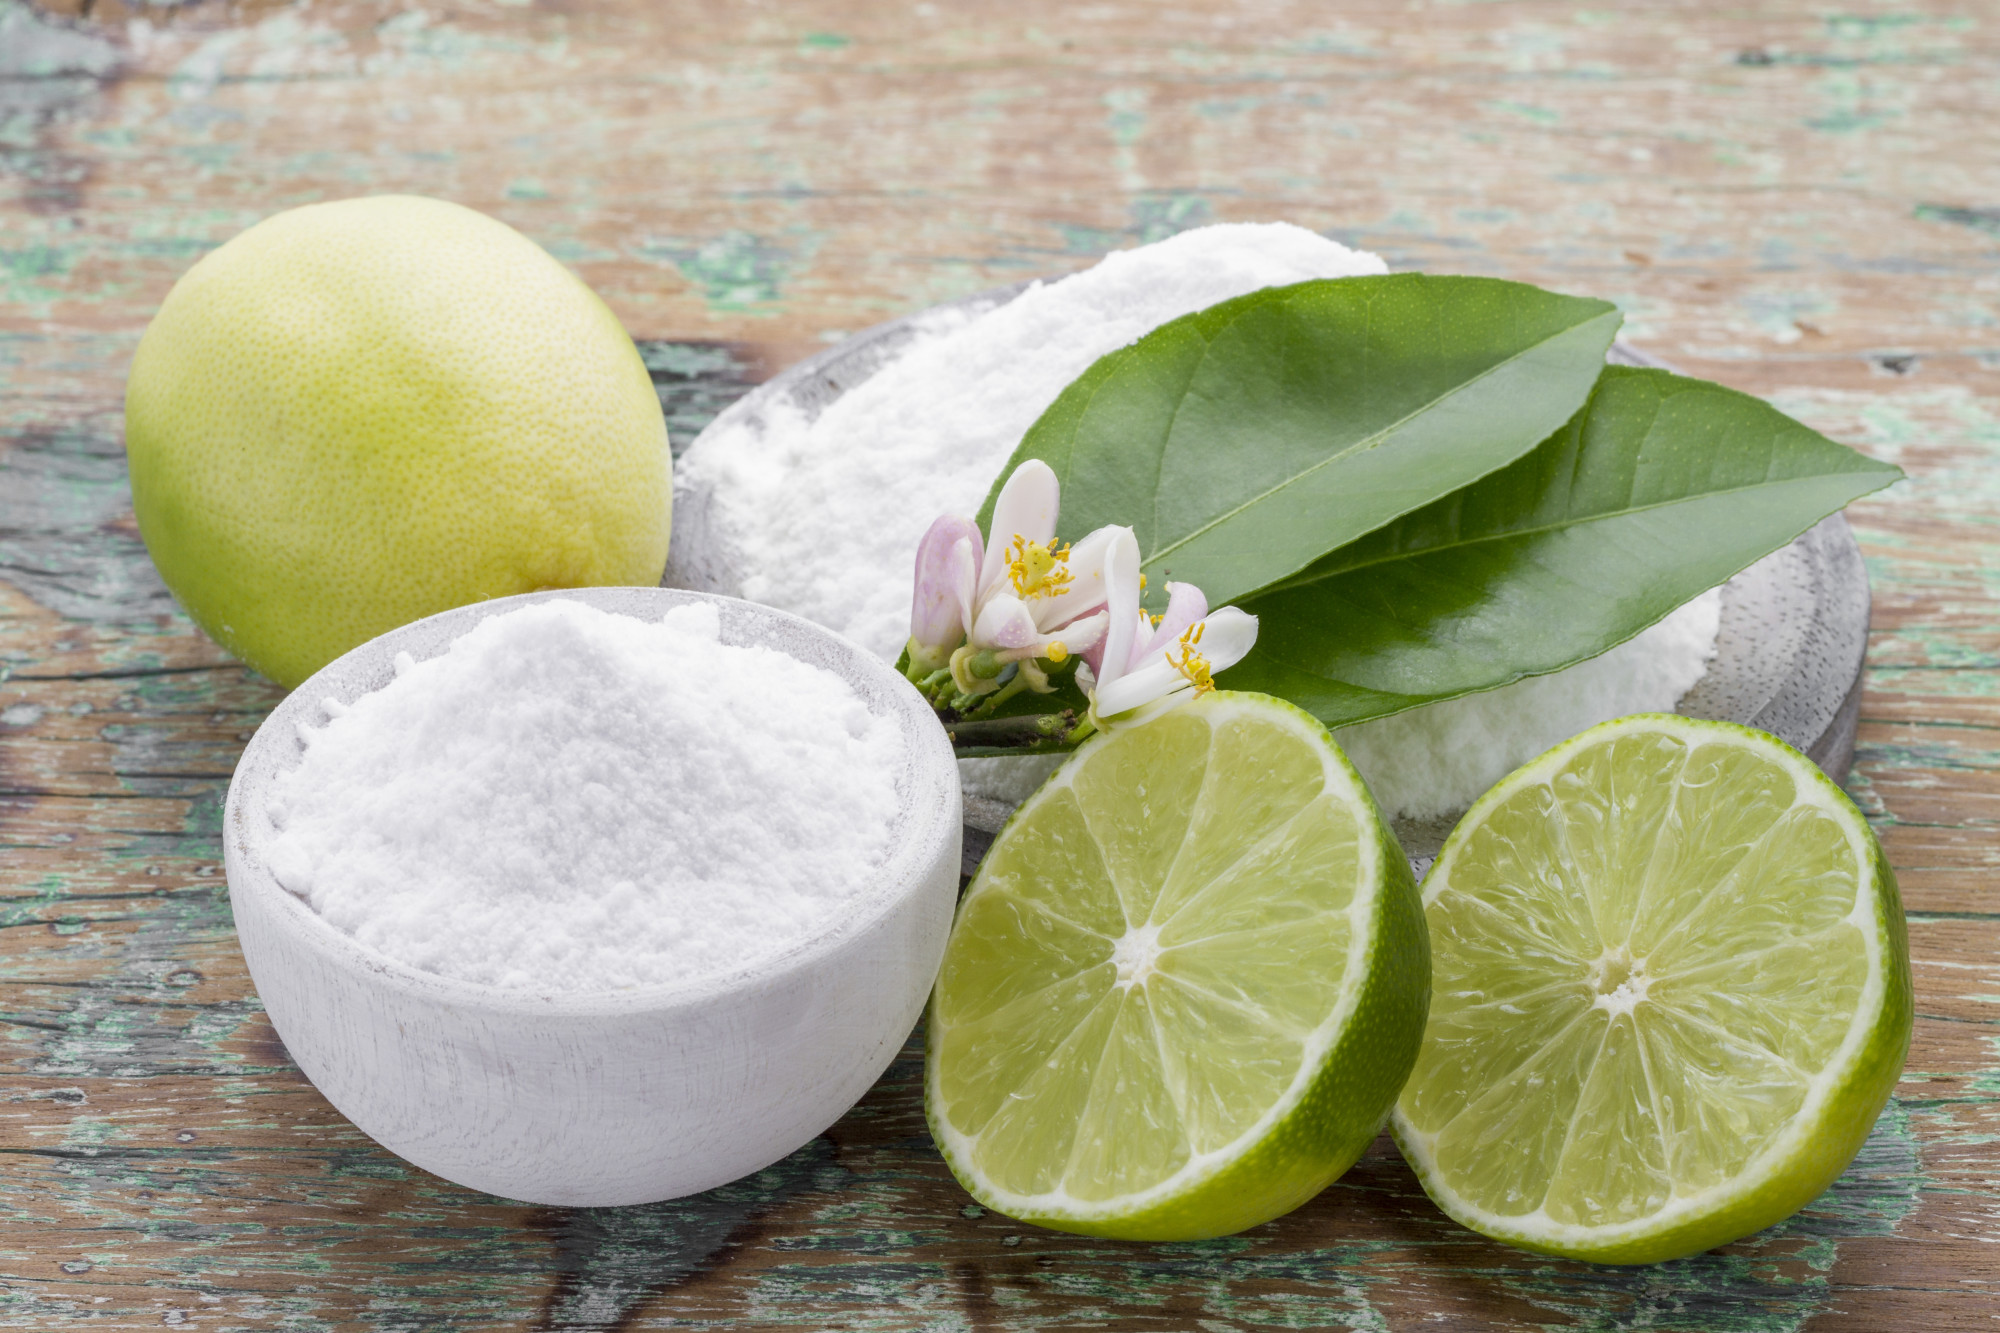 making your own citric acid cleaner